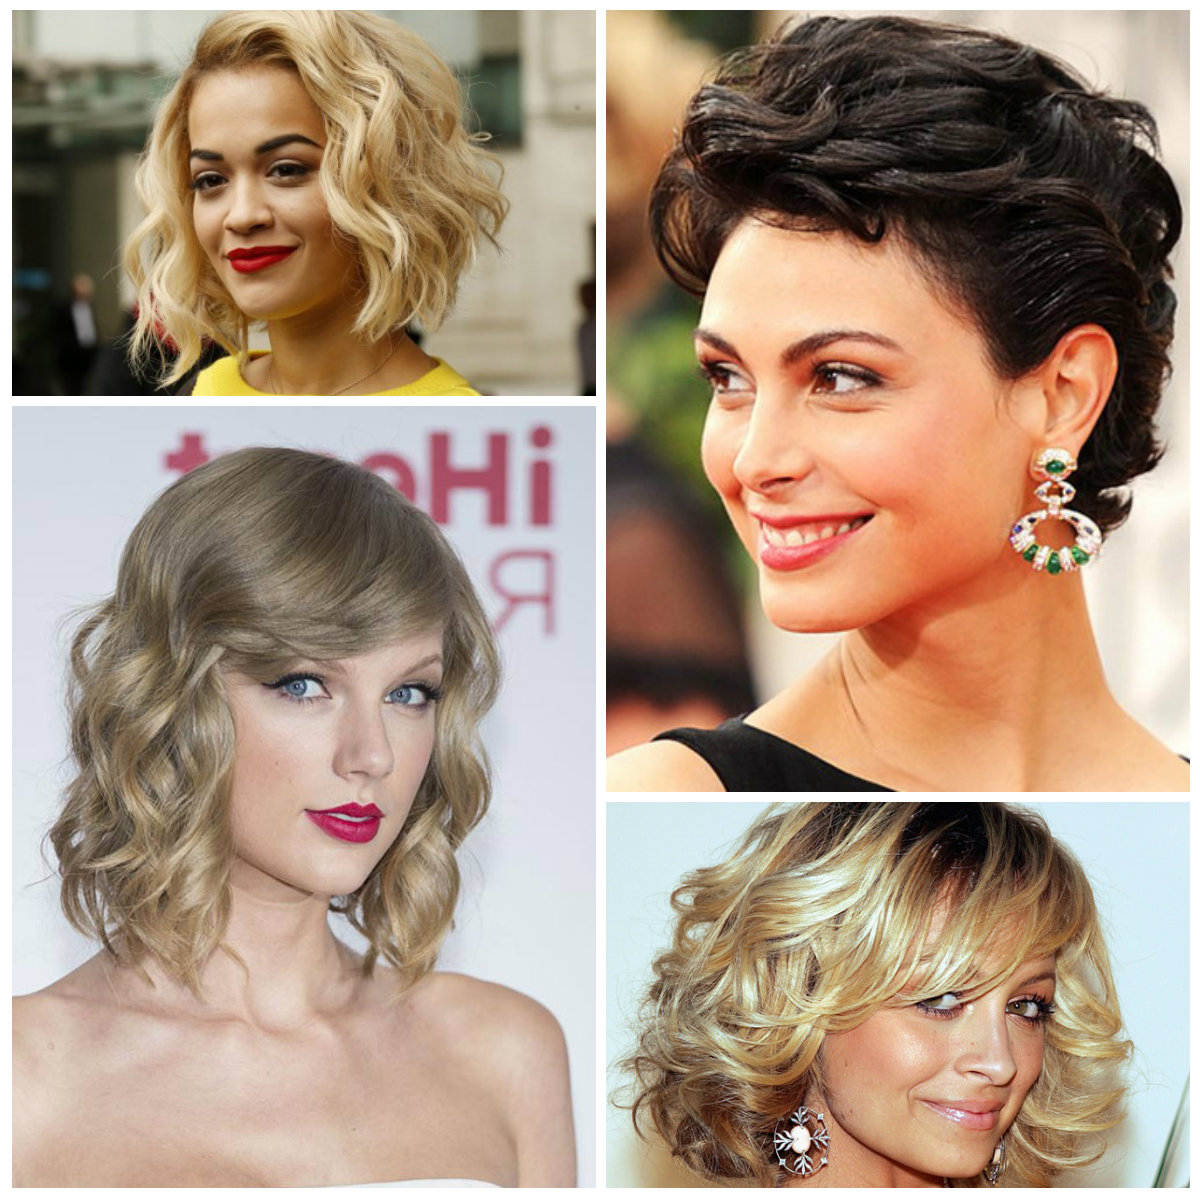 Short Hairstyles | Hairstyles For Women 2019, Haircuts For Long Throughout Short Haircuts For Voluminous Hair (View 22 of 25)